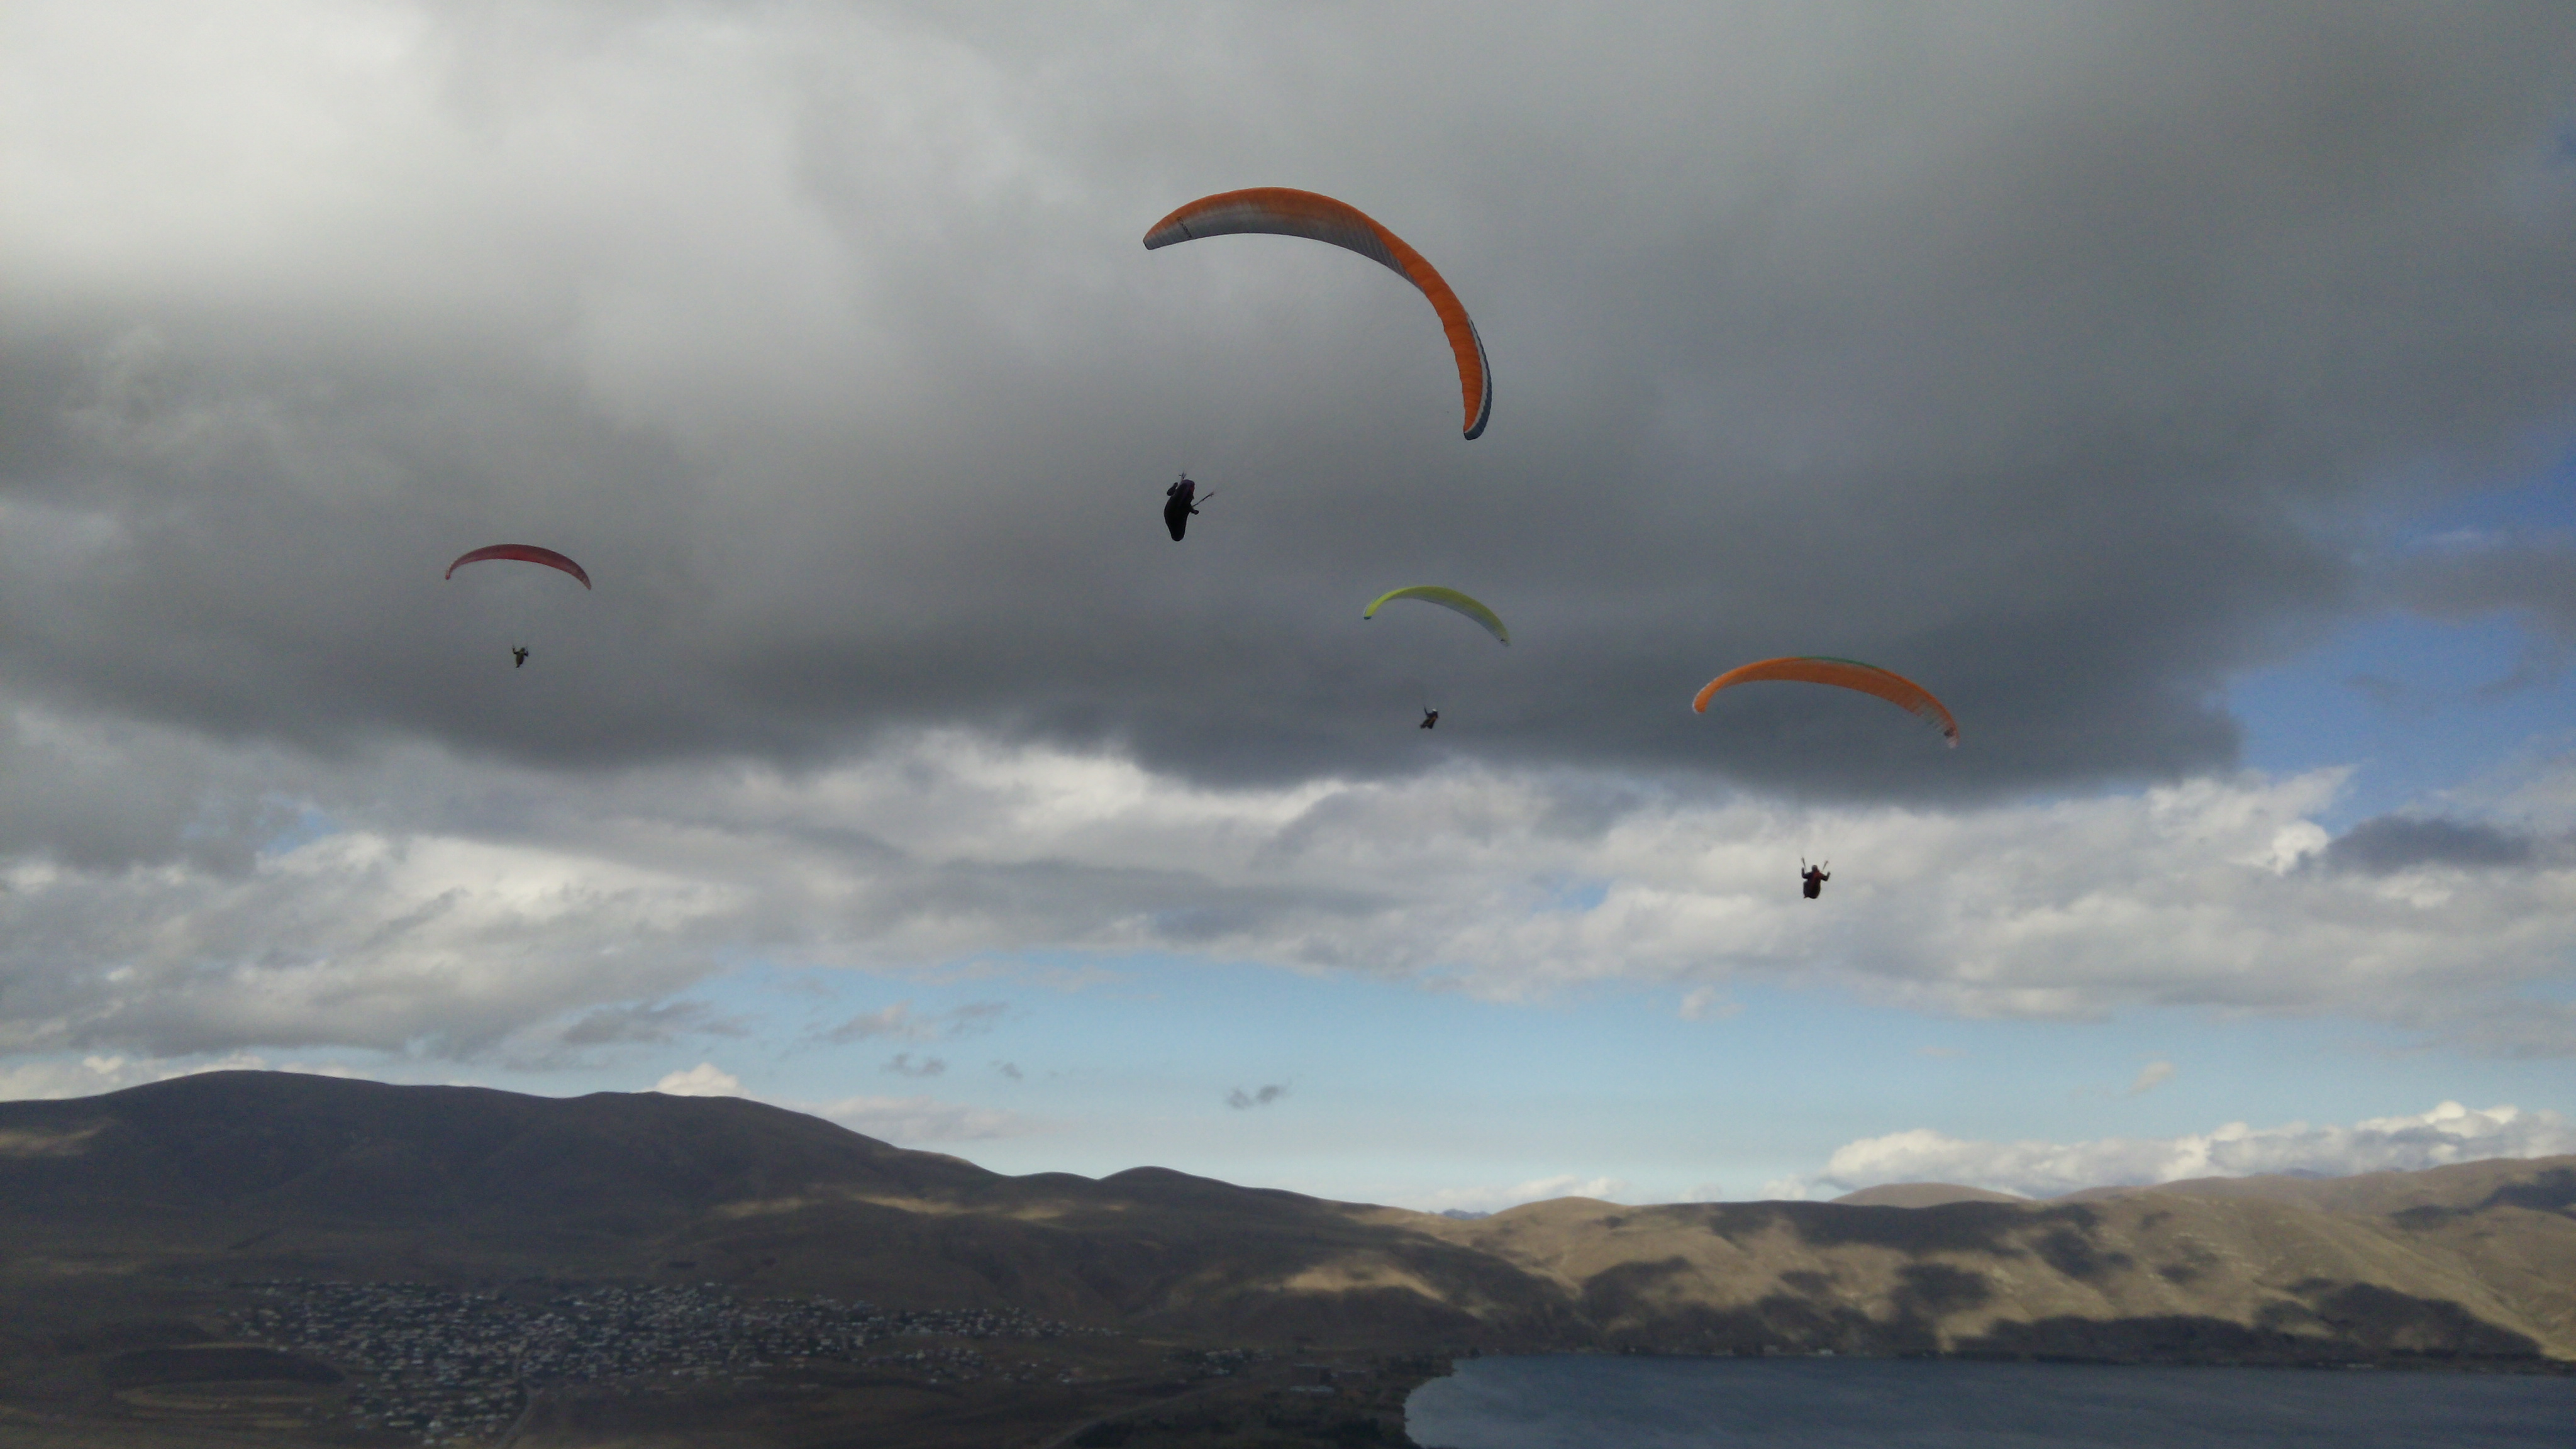 Paragliding in Armenia